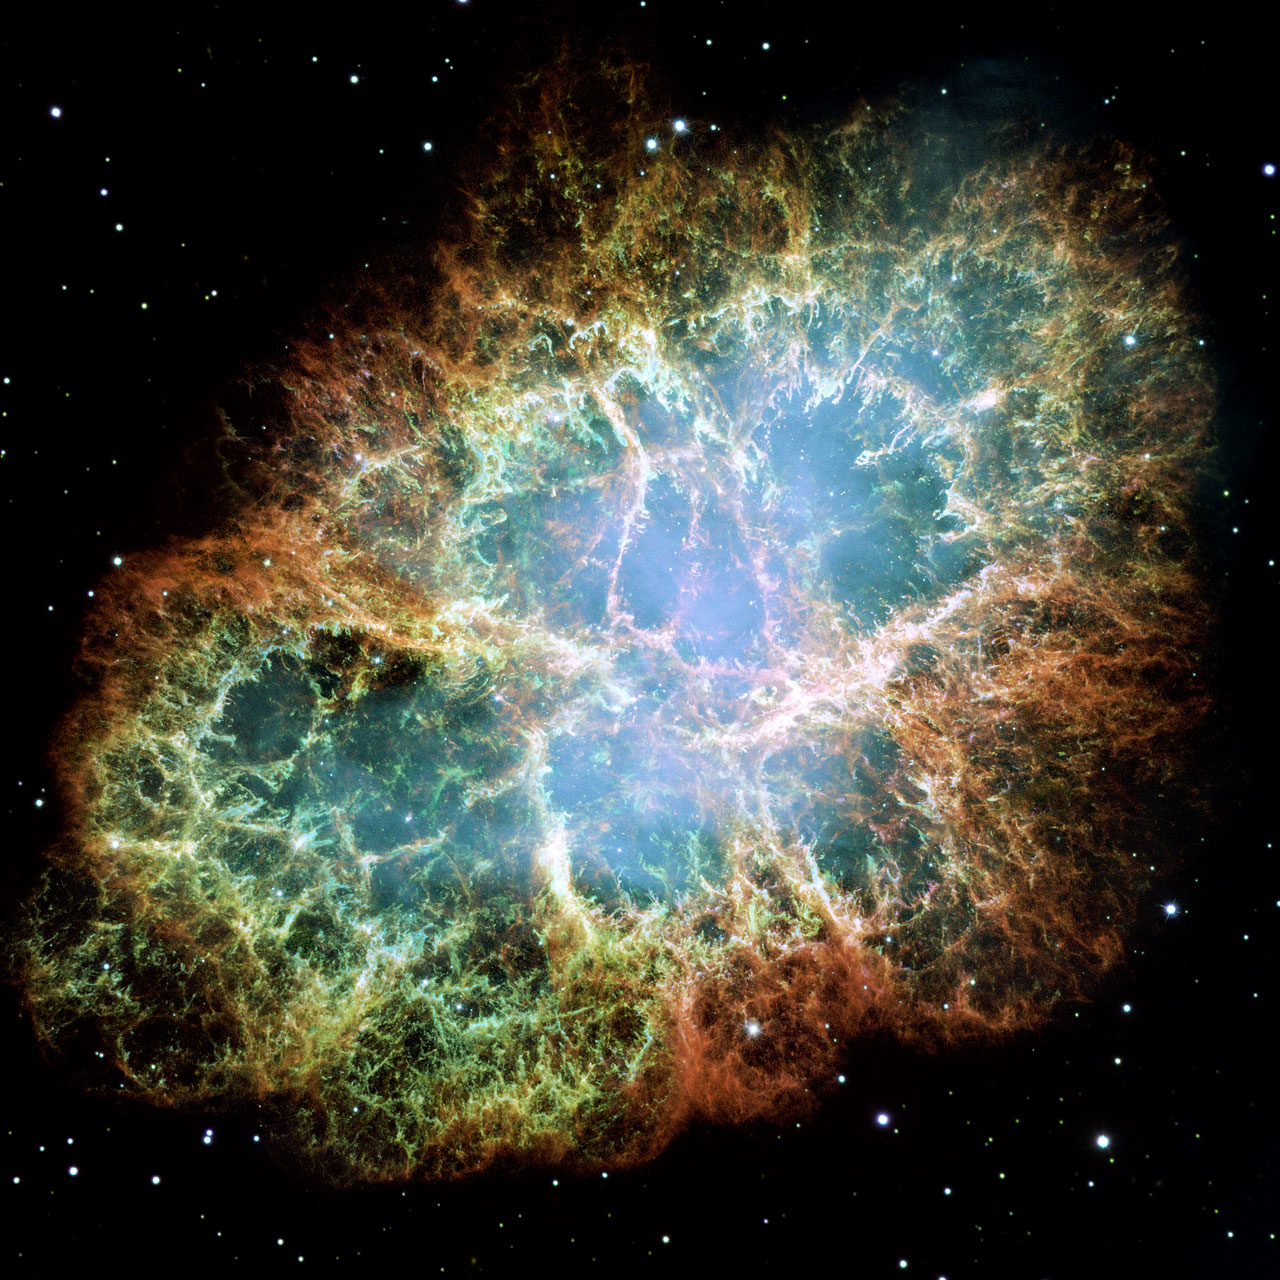 The 25 Best Hubble Space Telescope Images - ExtremeTech